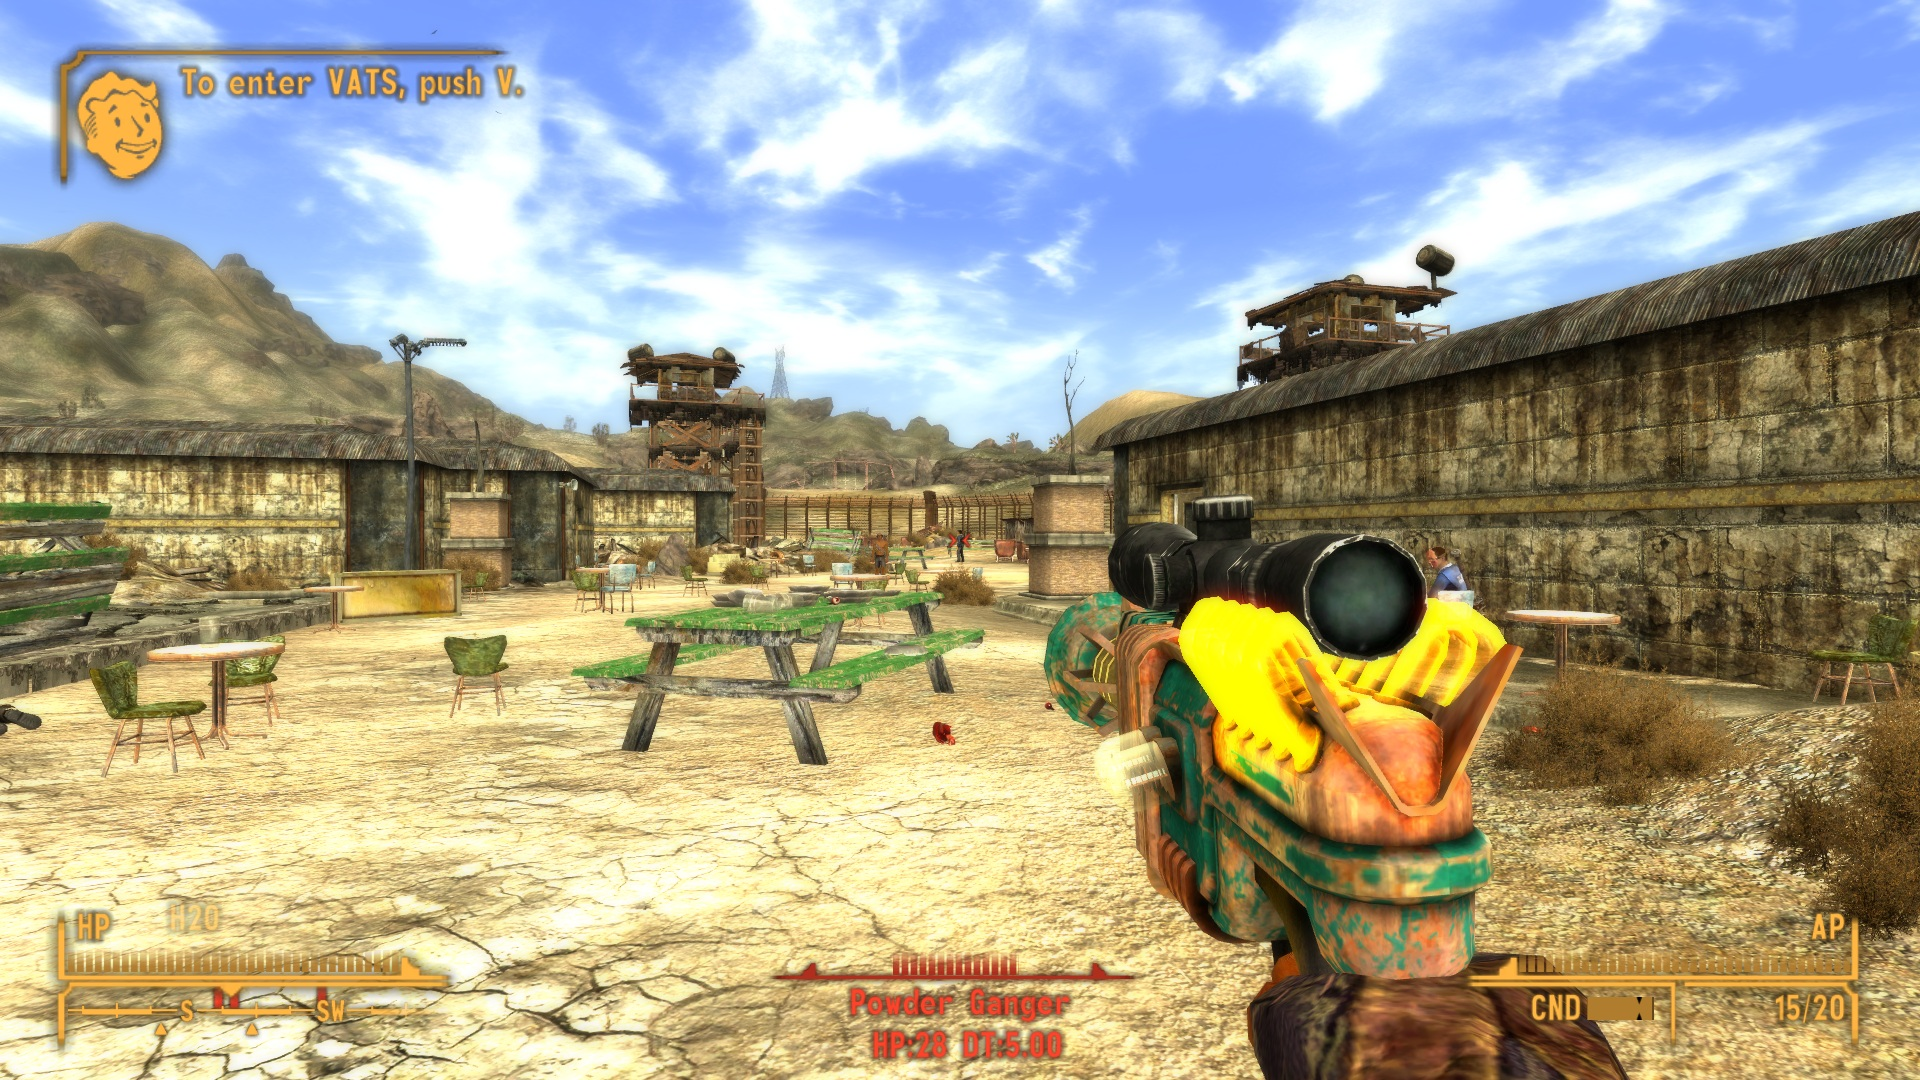 srp scoped recharger pistol at fallout new vegas mods and community. Black Bedroom Furniture Sets. Home Design Ideas